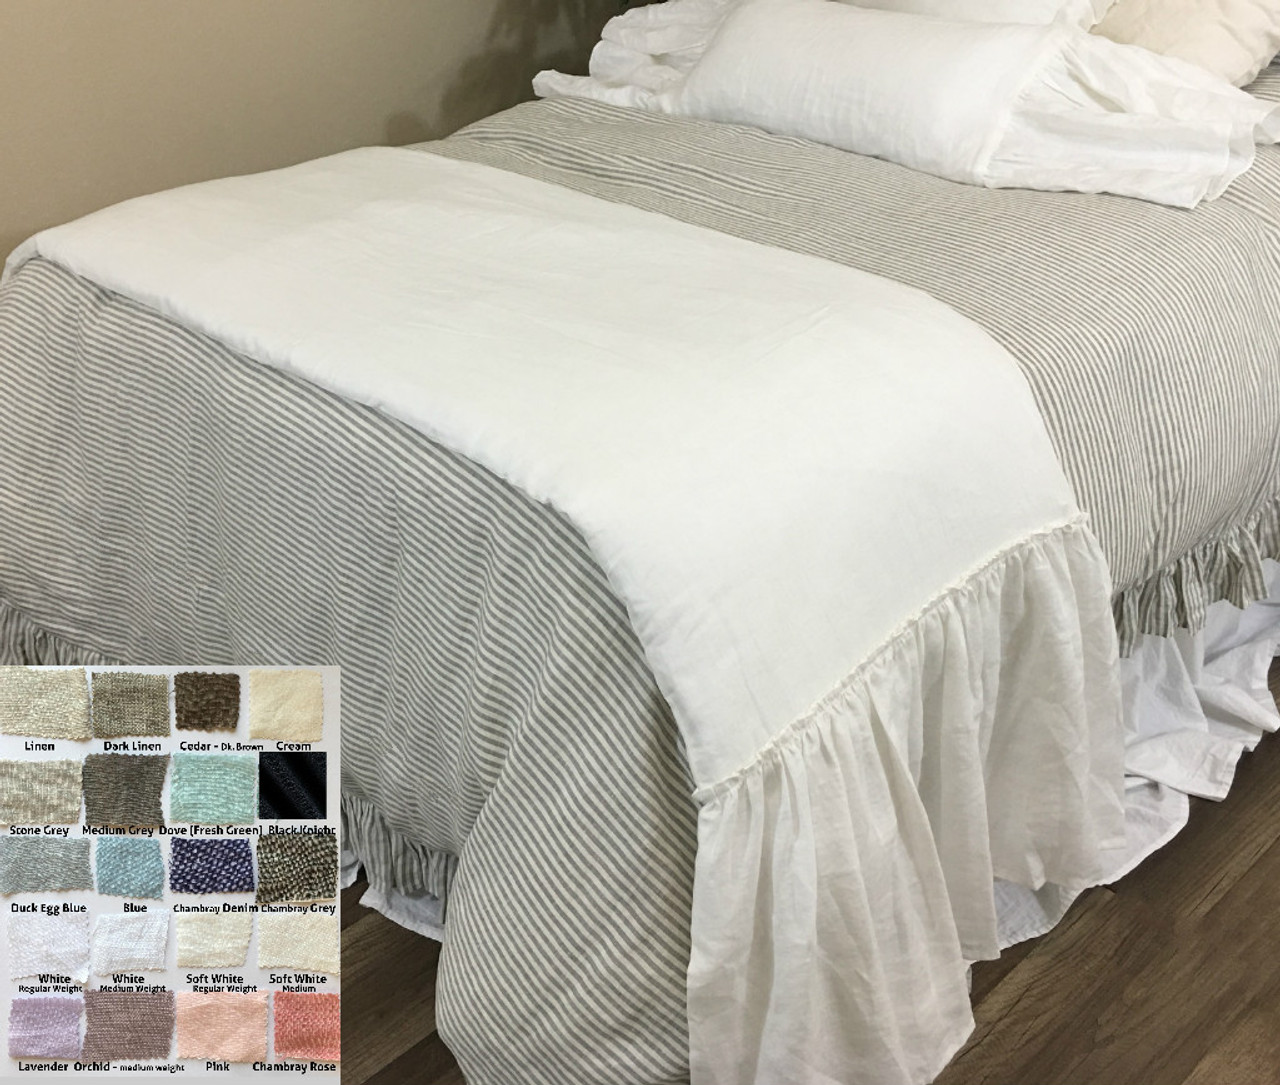 Linen Long Ruffle Bed Scarf, Bed Runner, Multiple Colors, adorable!